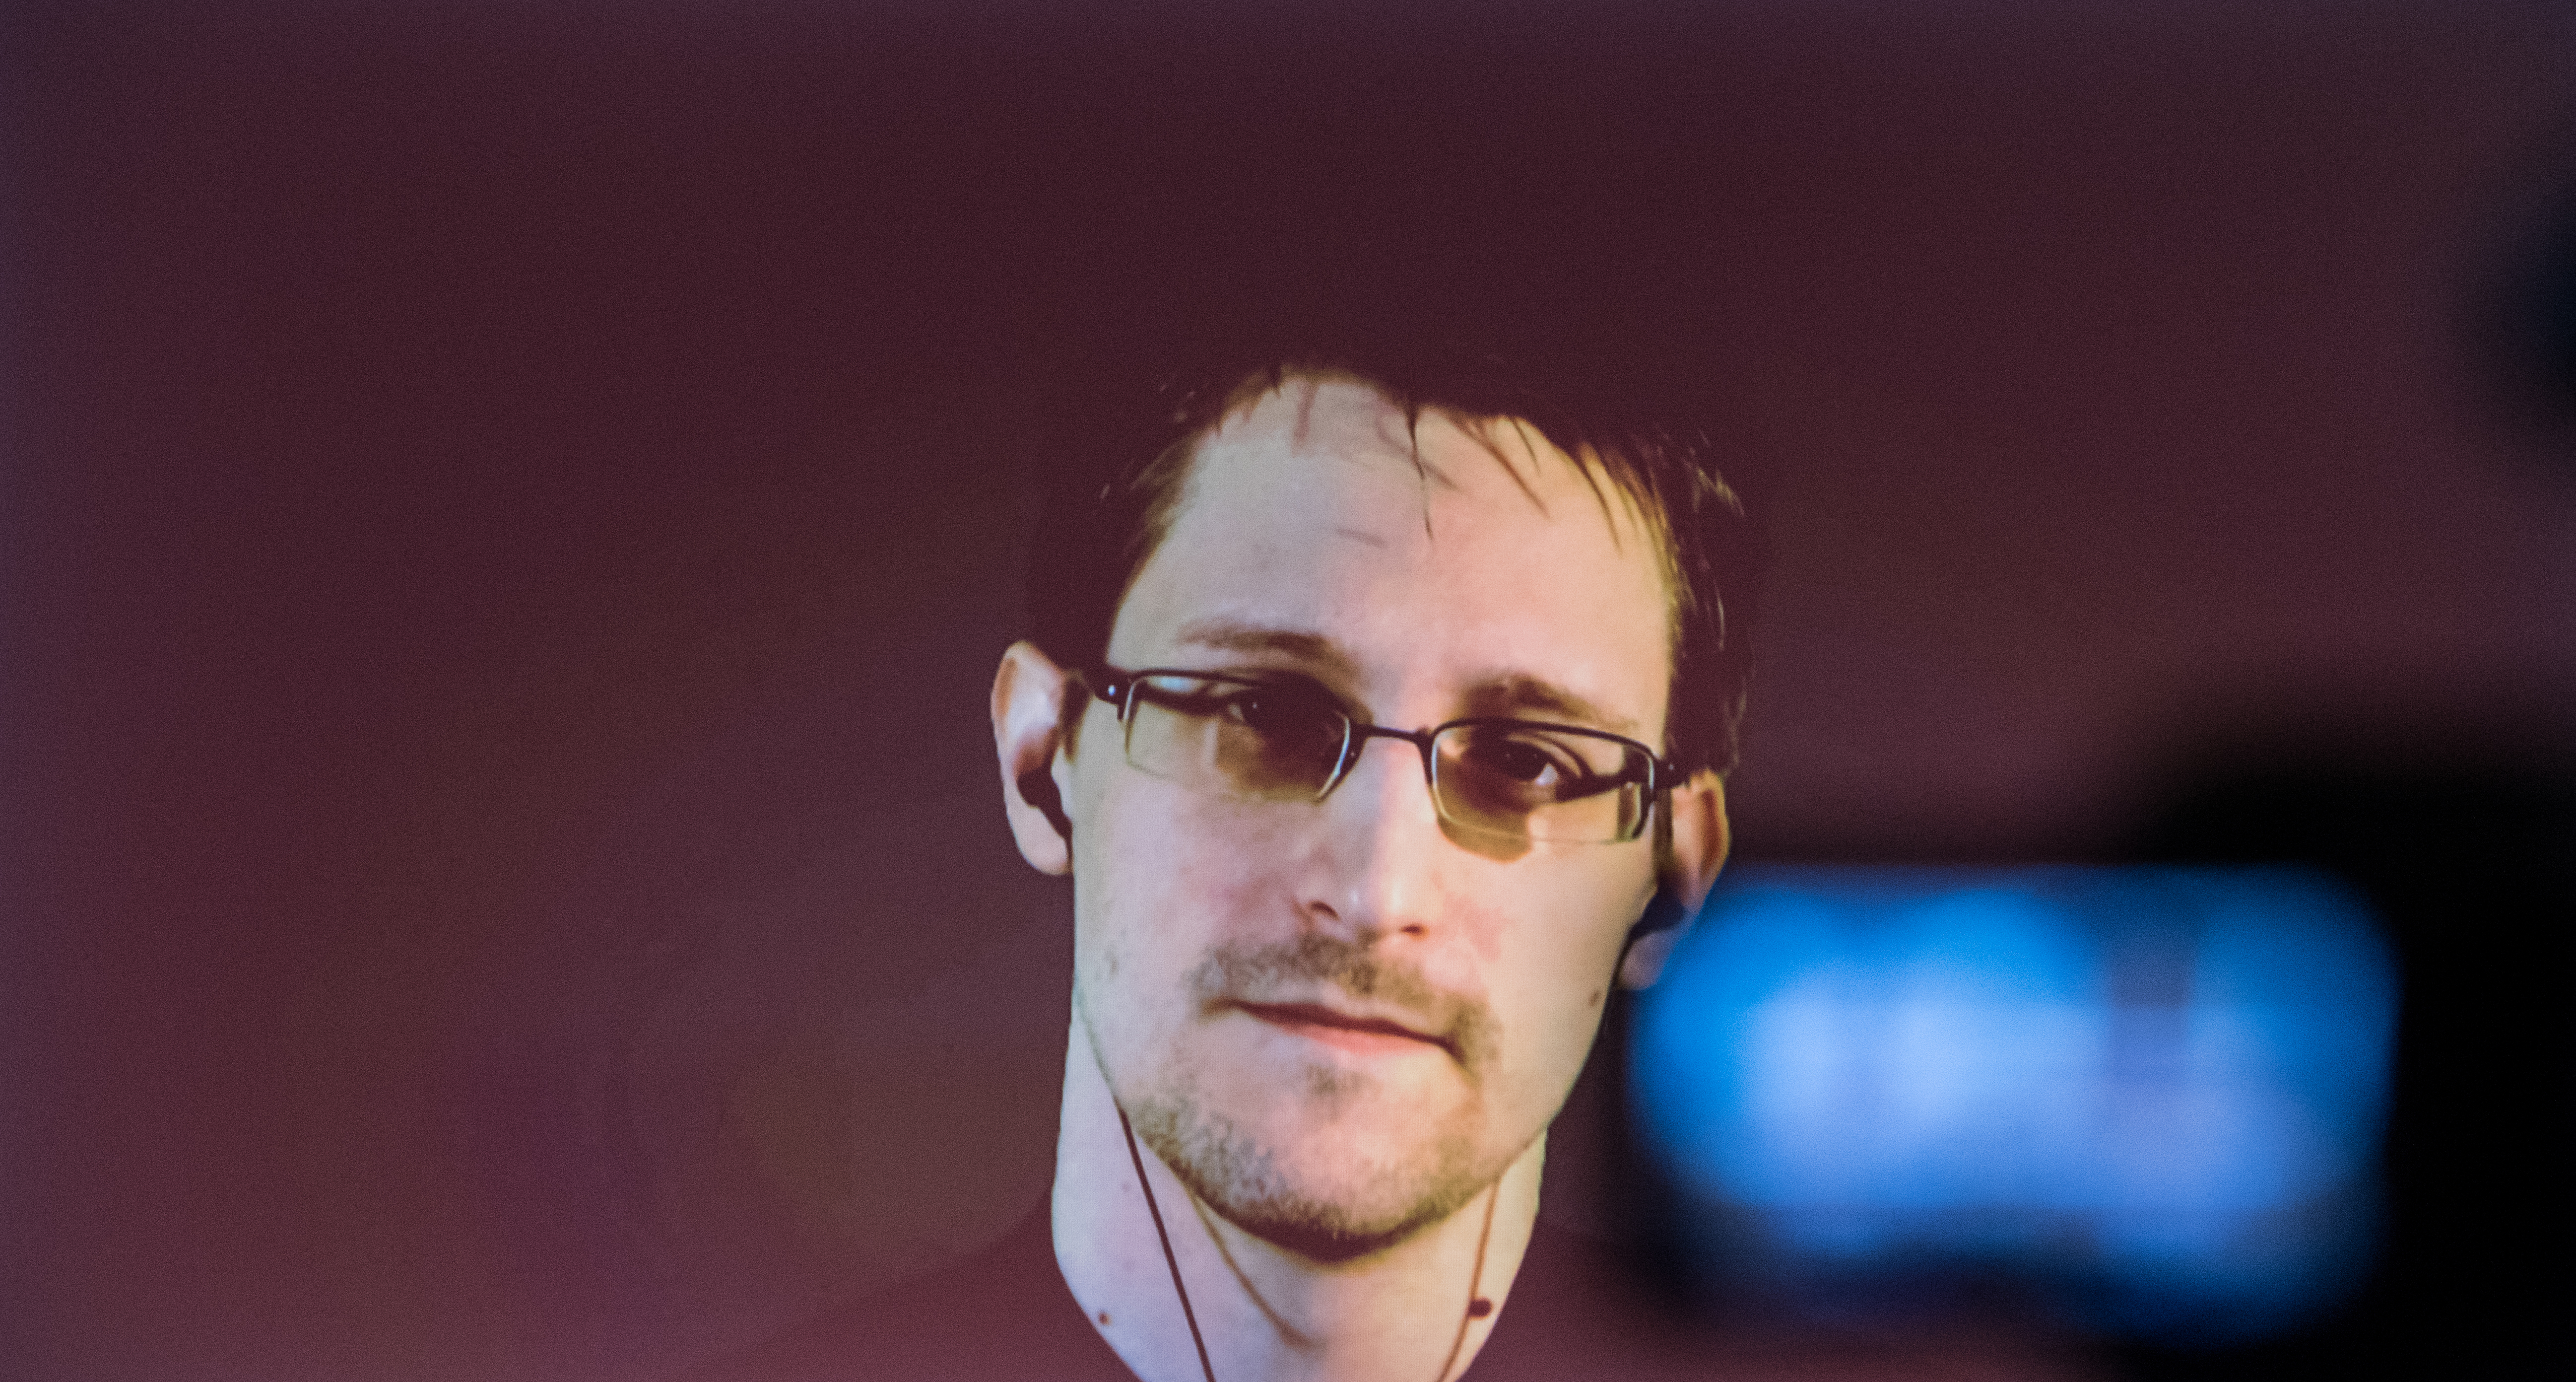 US whistleblower Edward Snowden speaks during a live broadcast at the CeBITin Hanover, Germany, on March 18, 2015.